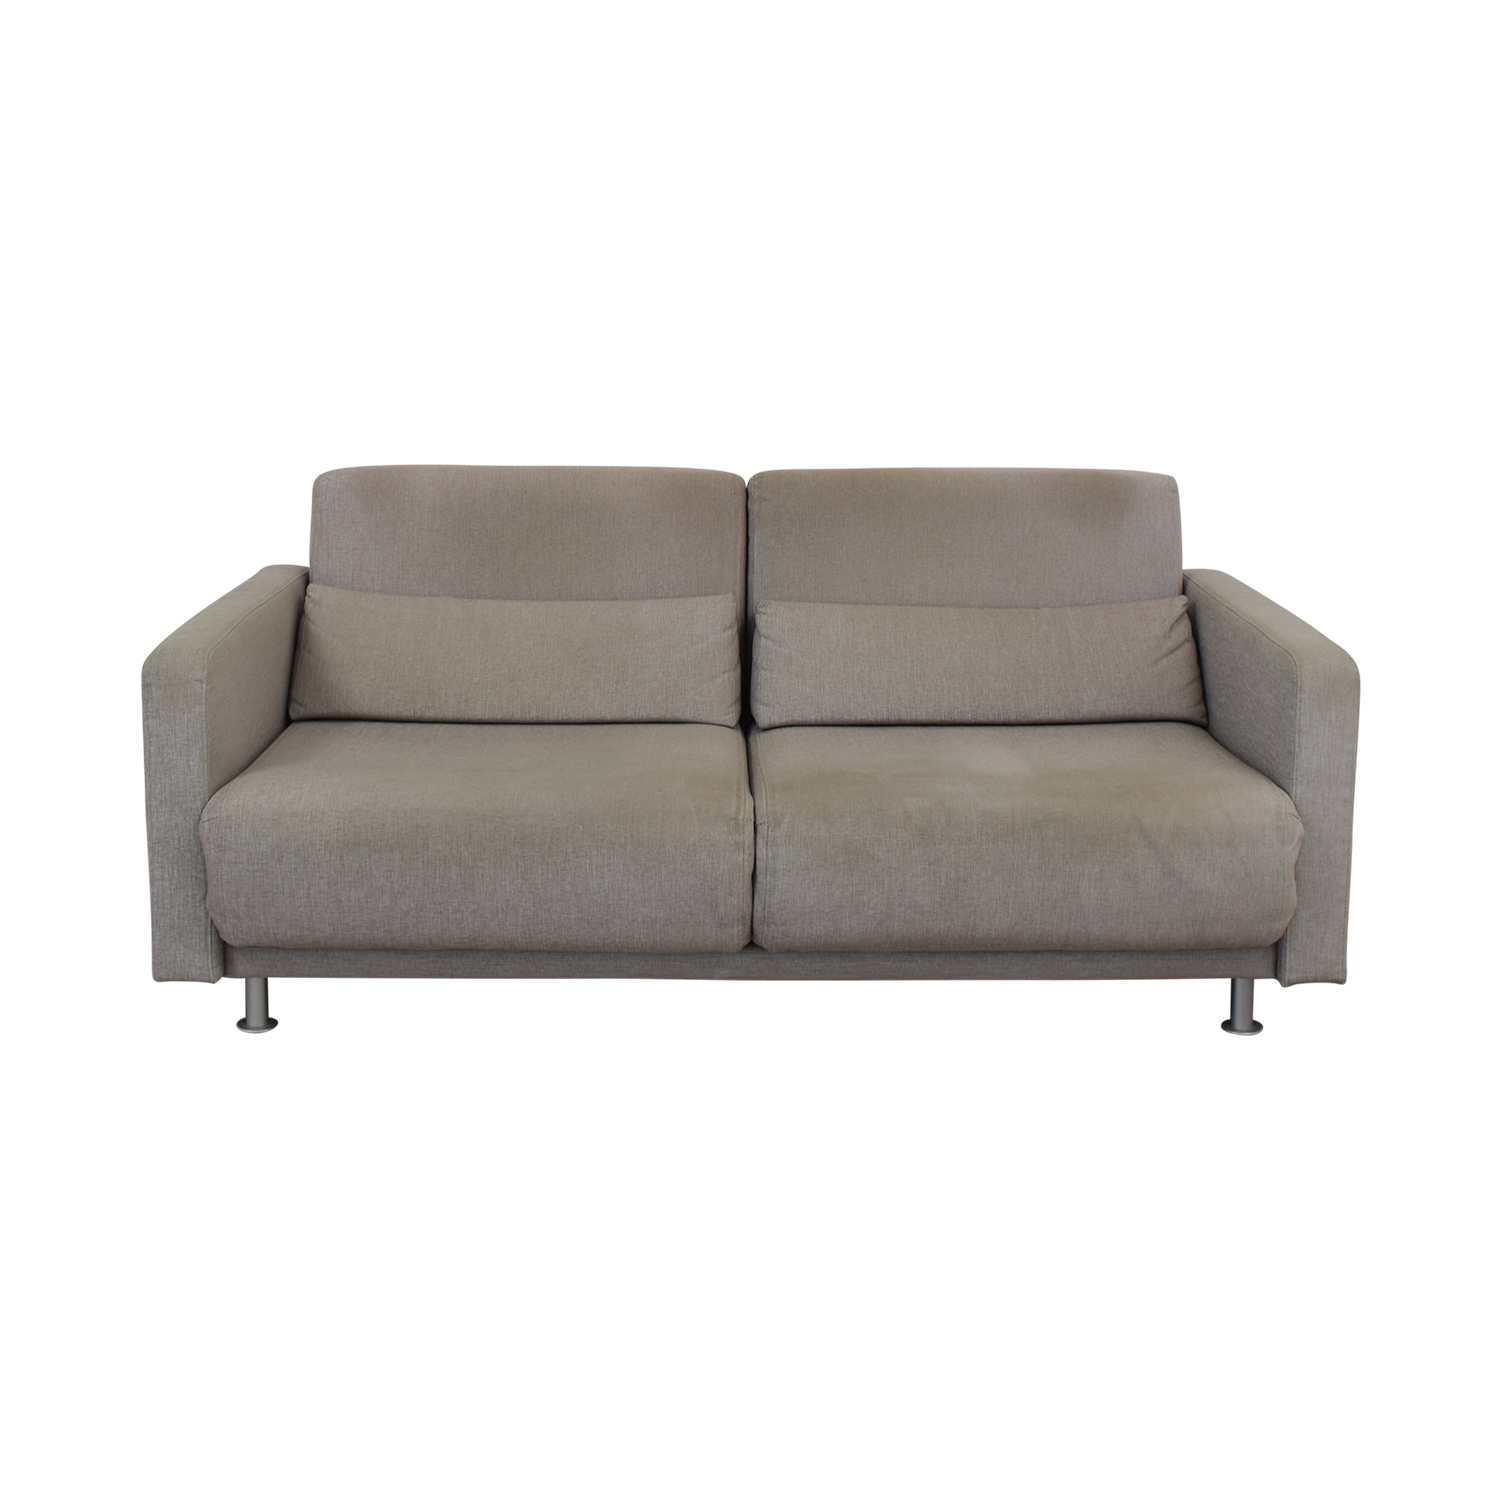 BoConcept Melo Grey Sofa Bed / Sofas